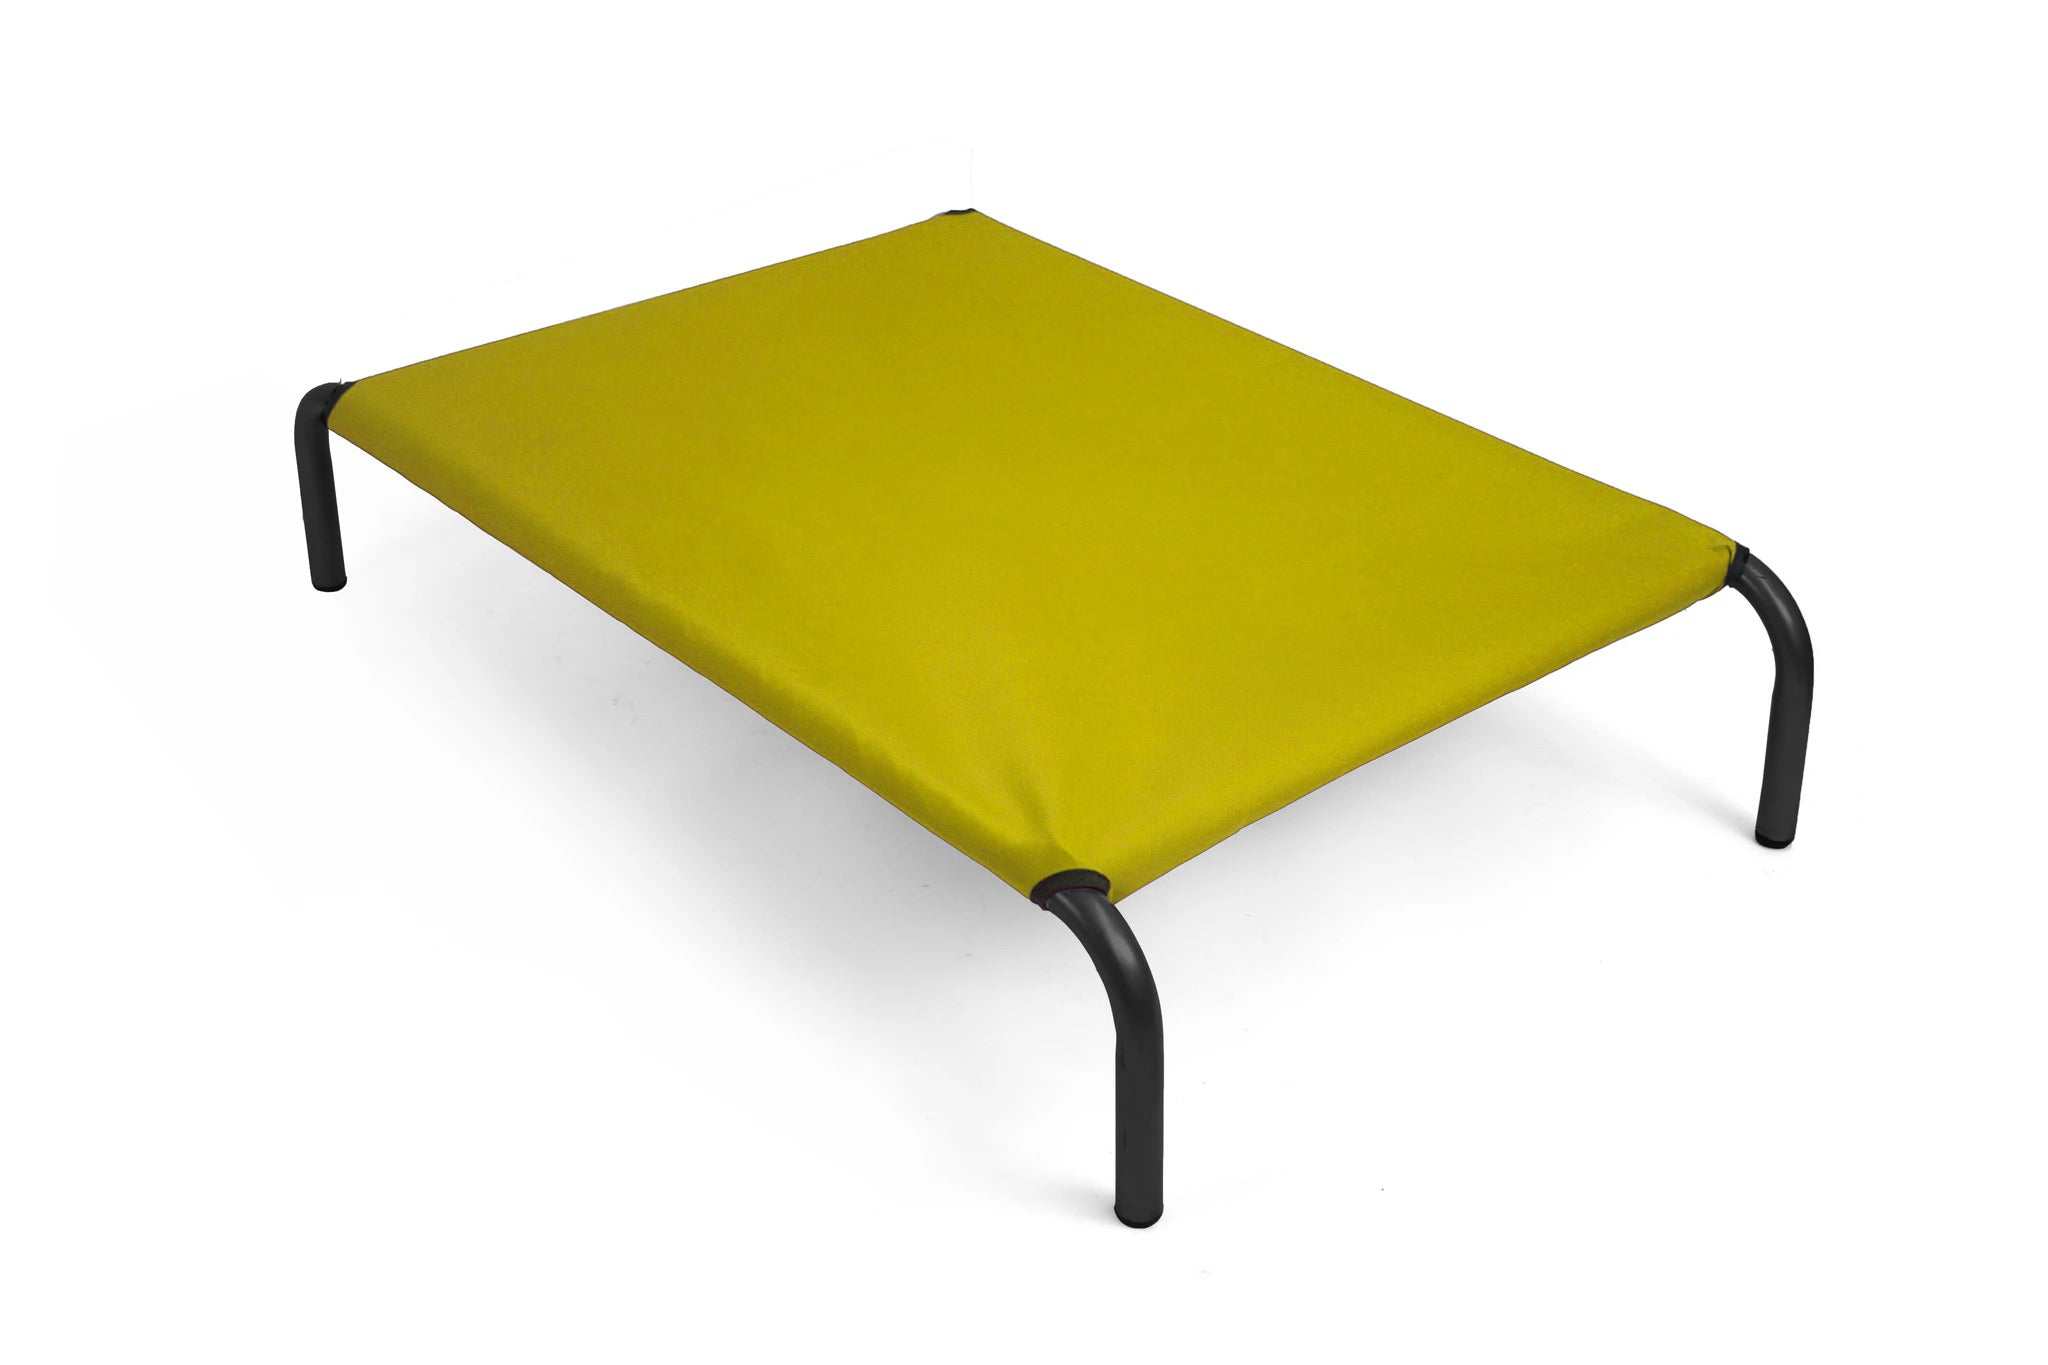 HiK9 Bed with Yellow Canvas Cover